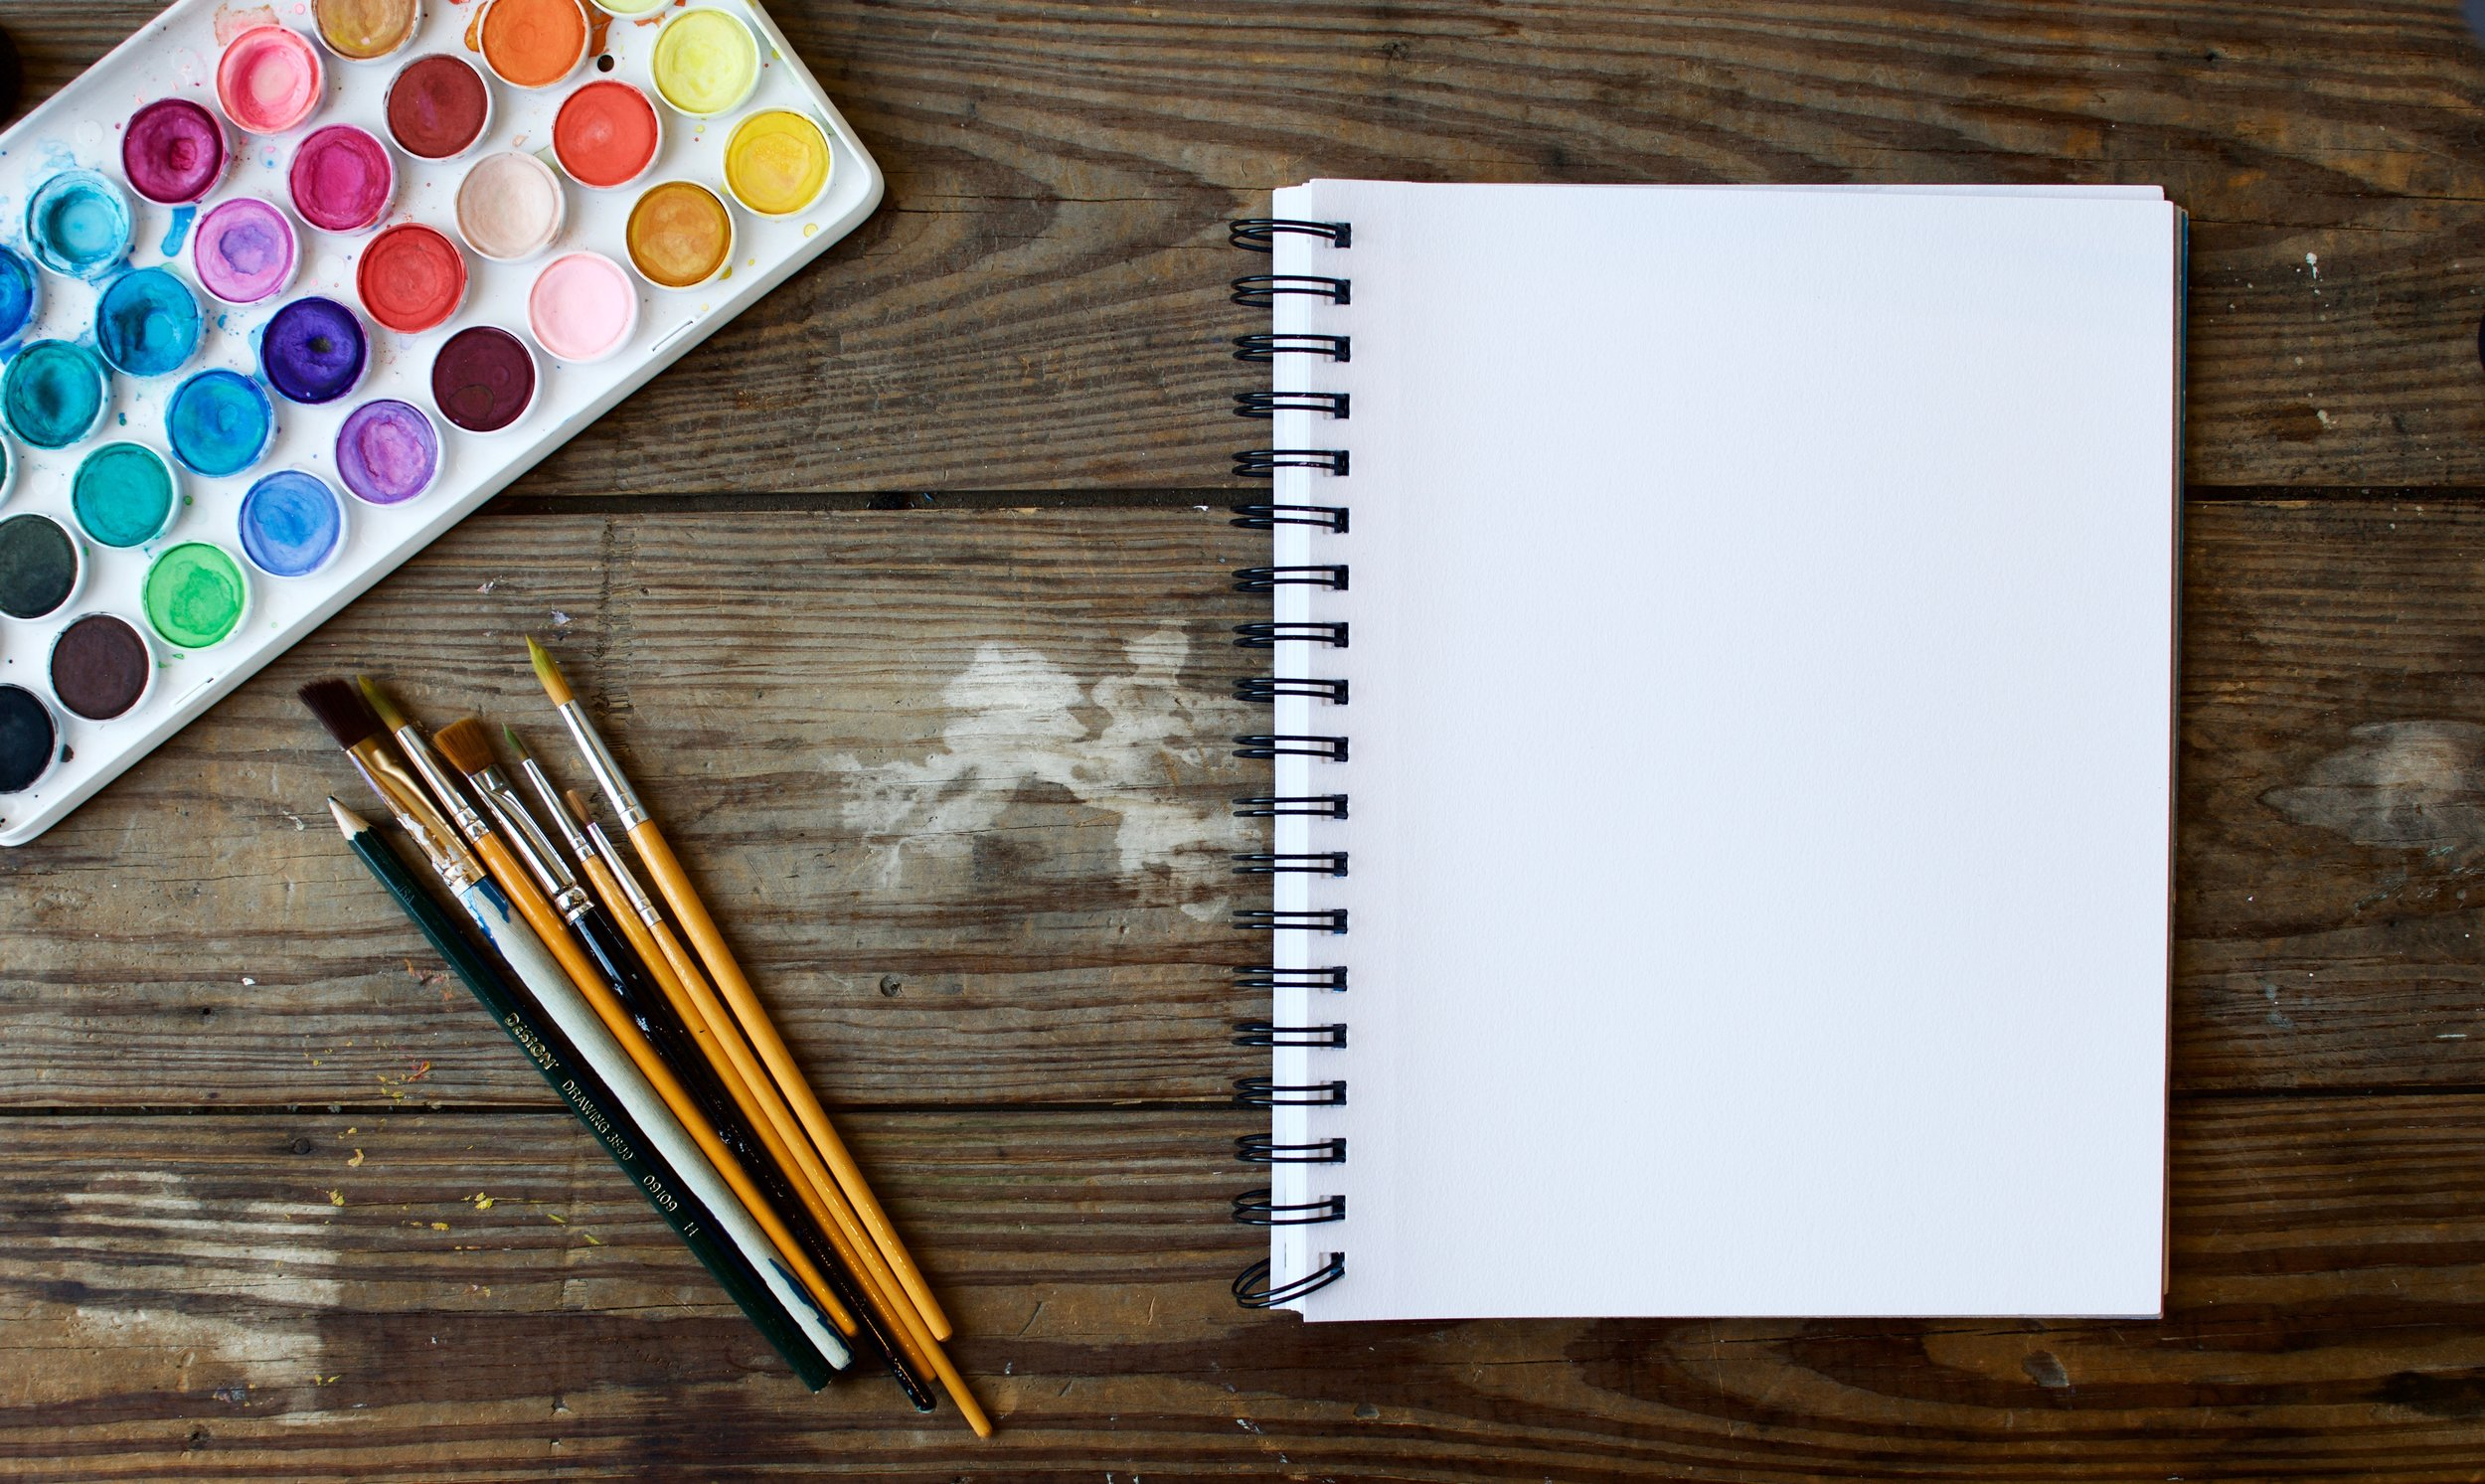 A Blank Page With Paint & Paintbrushes